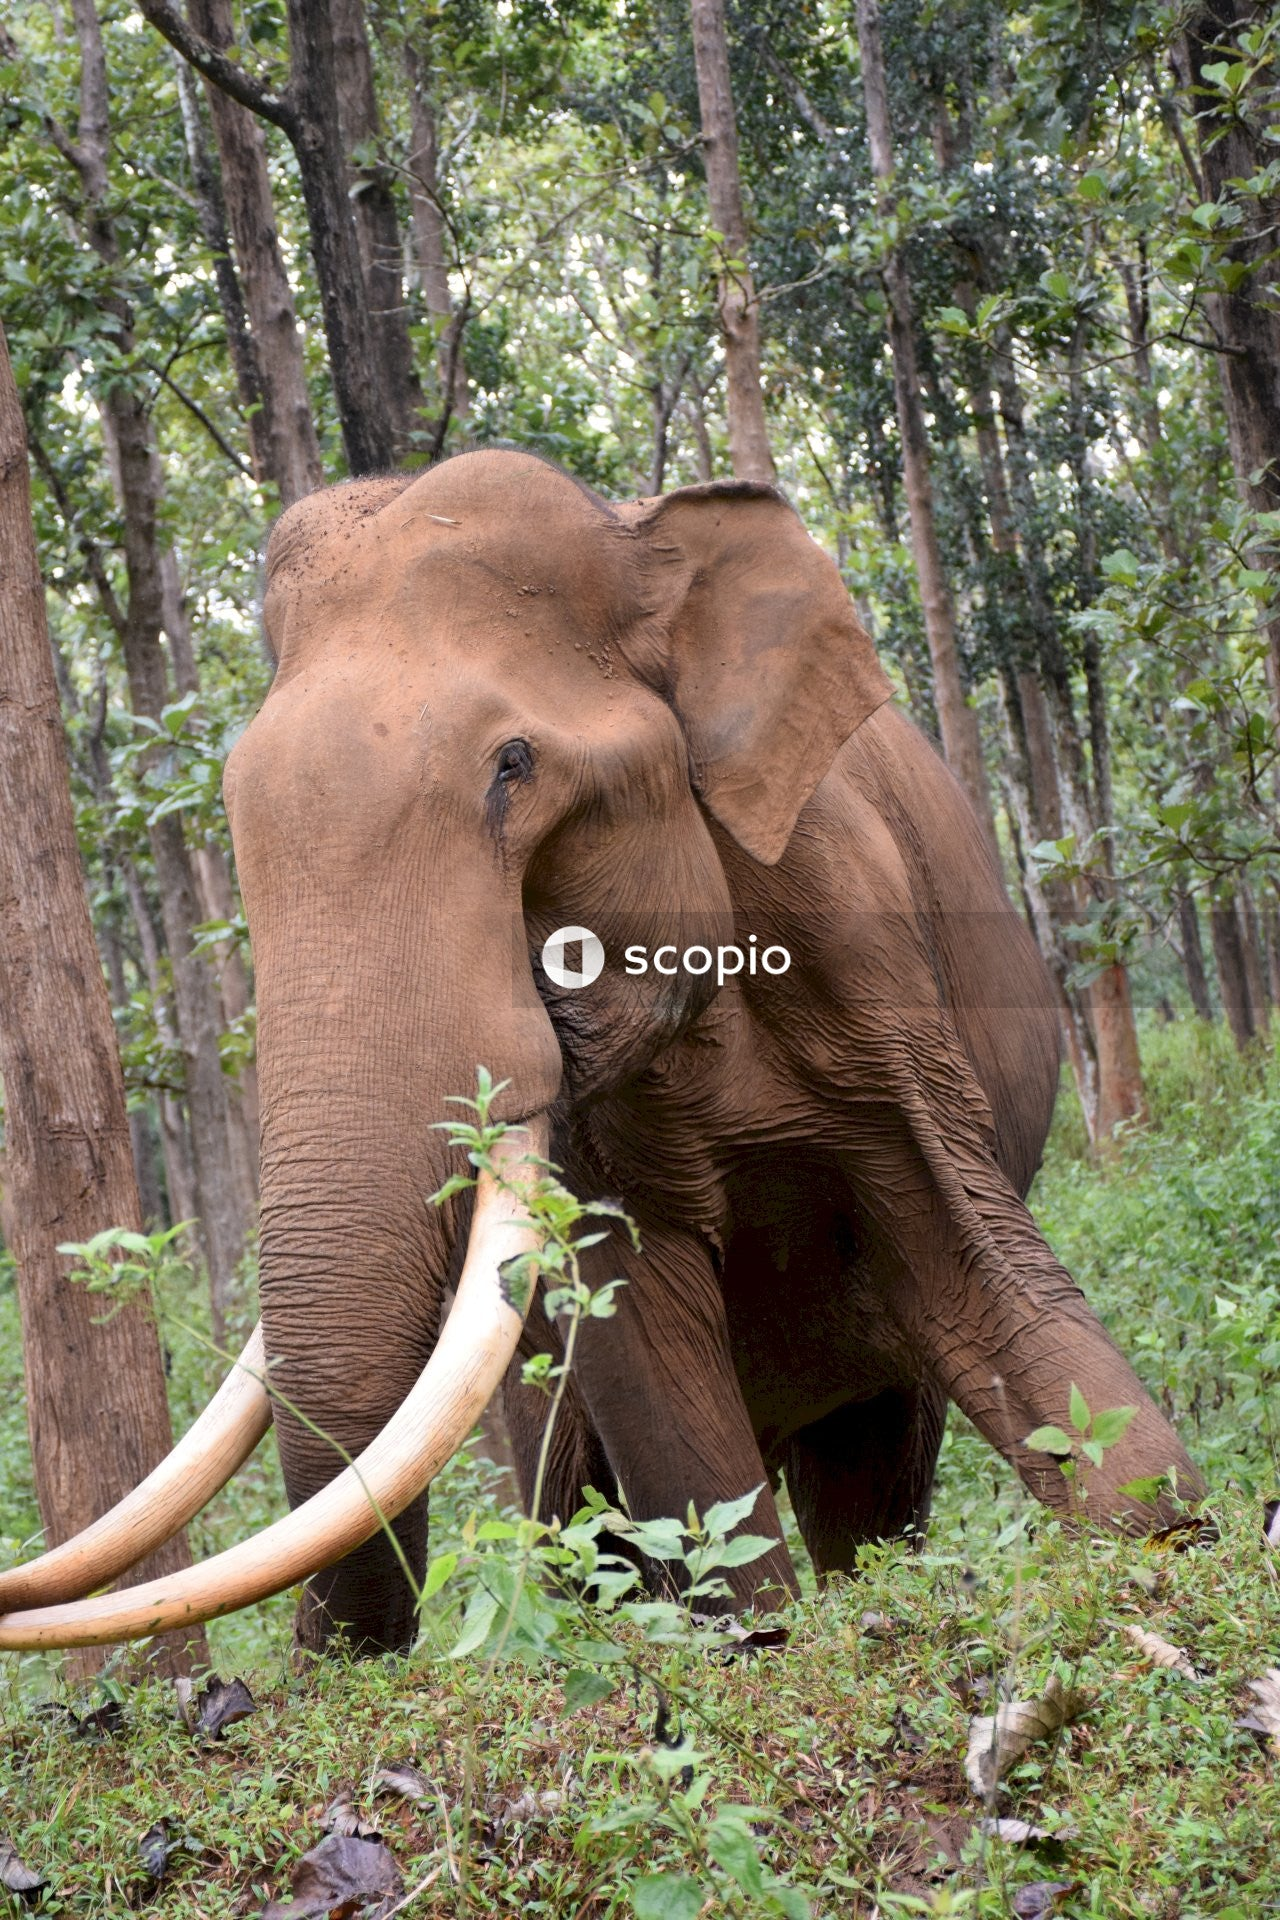 Brown elephant eating green plant